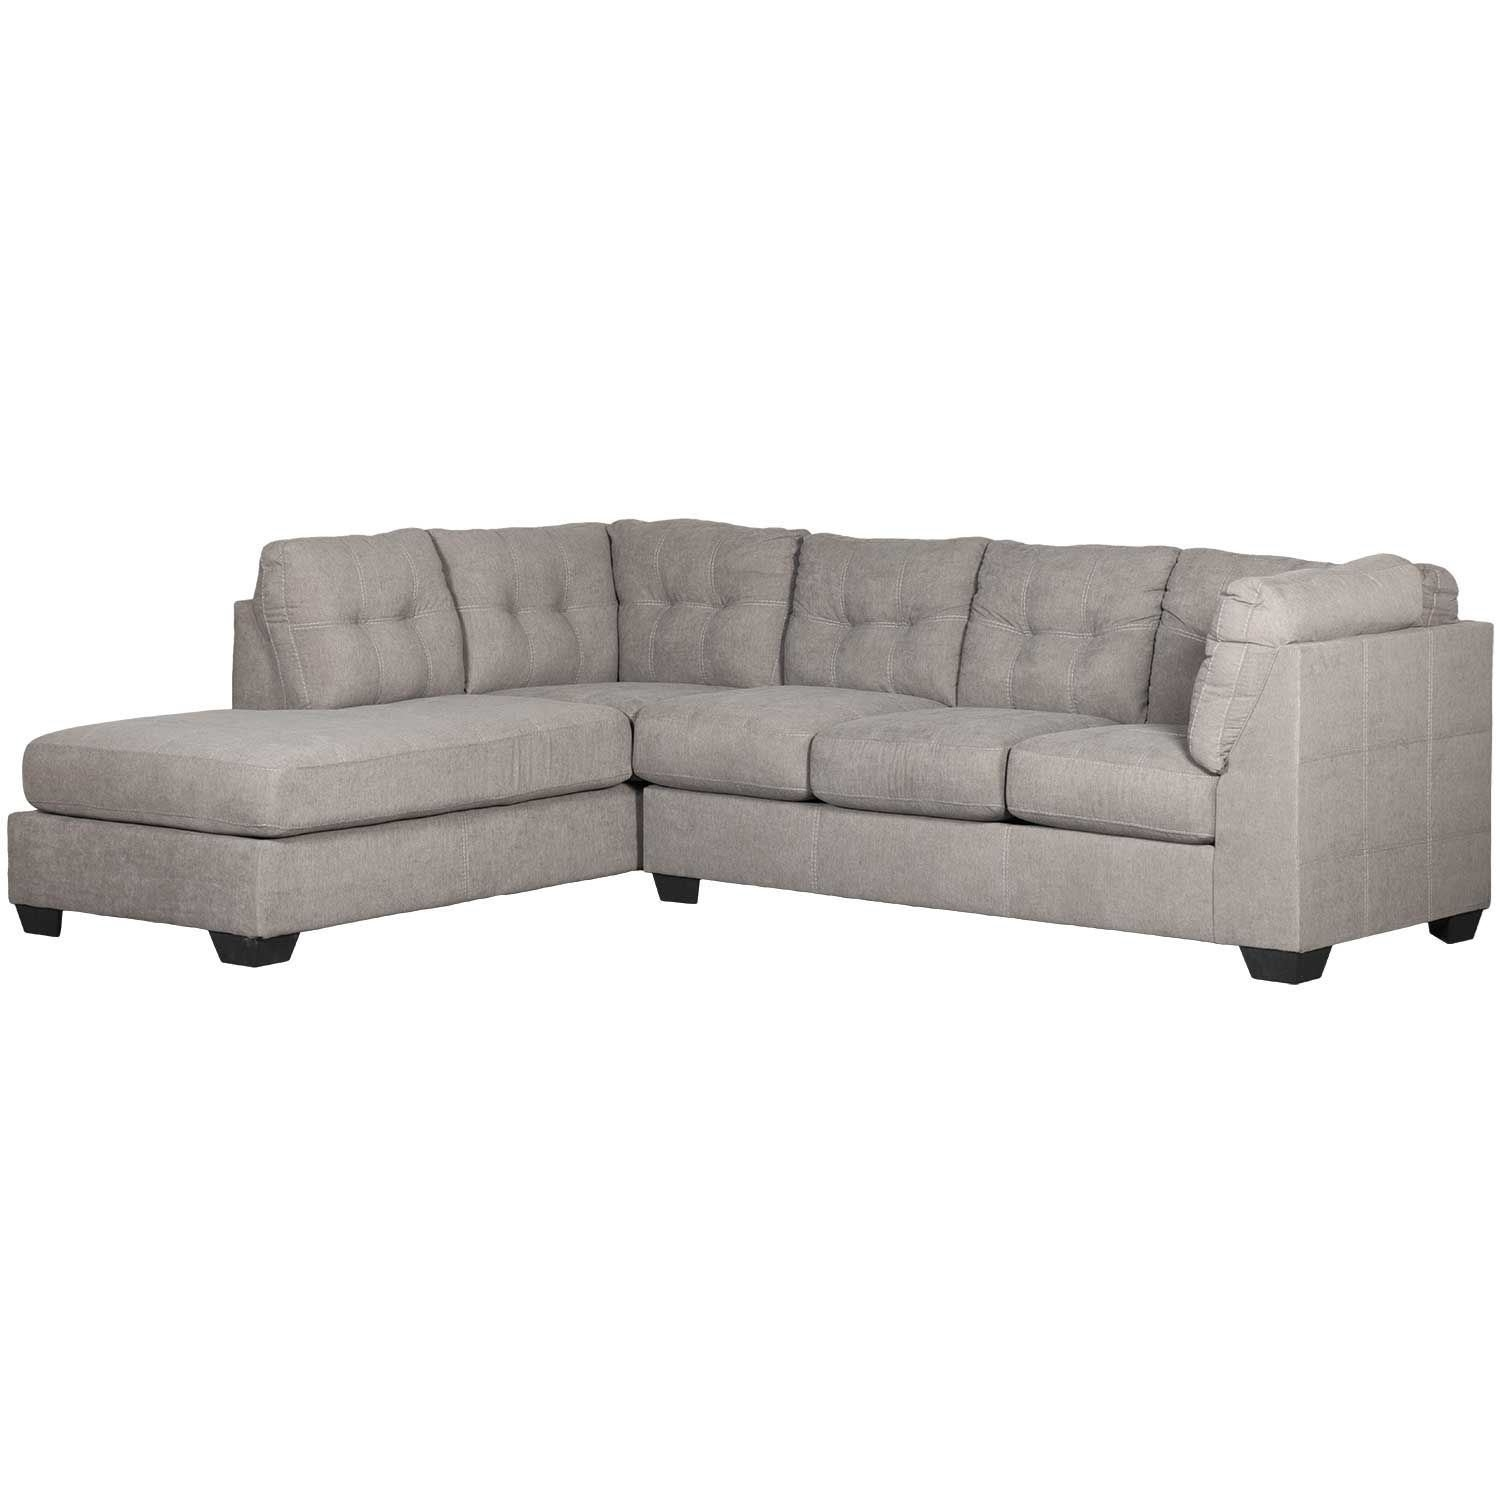 Maier Charcoal 2 Piece Sectional With Laf Chaise | 4520016/67 Intended For Marissa Ii 3 Piece Sectionals (View 15 of 25)